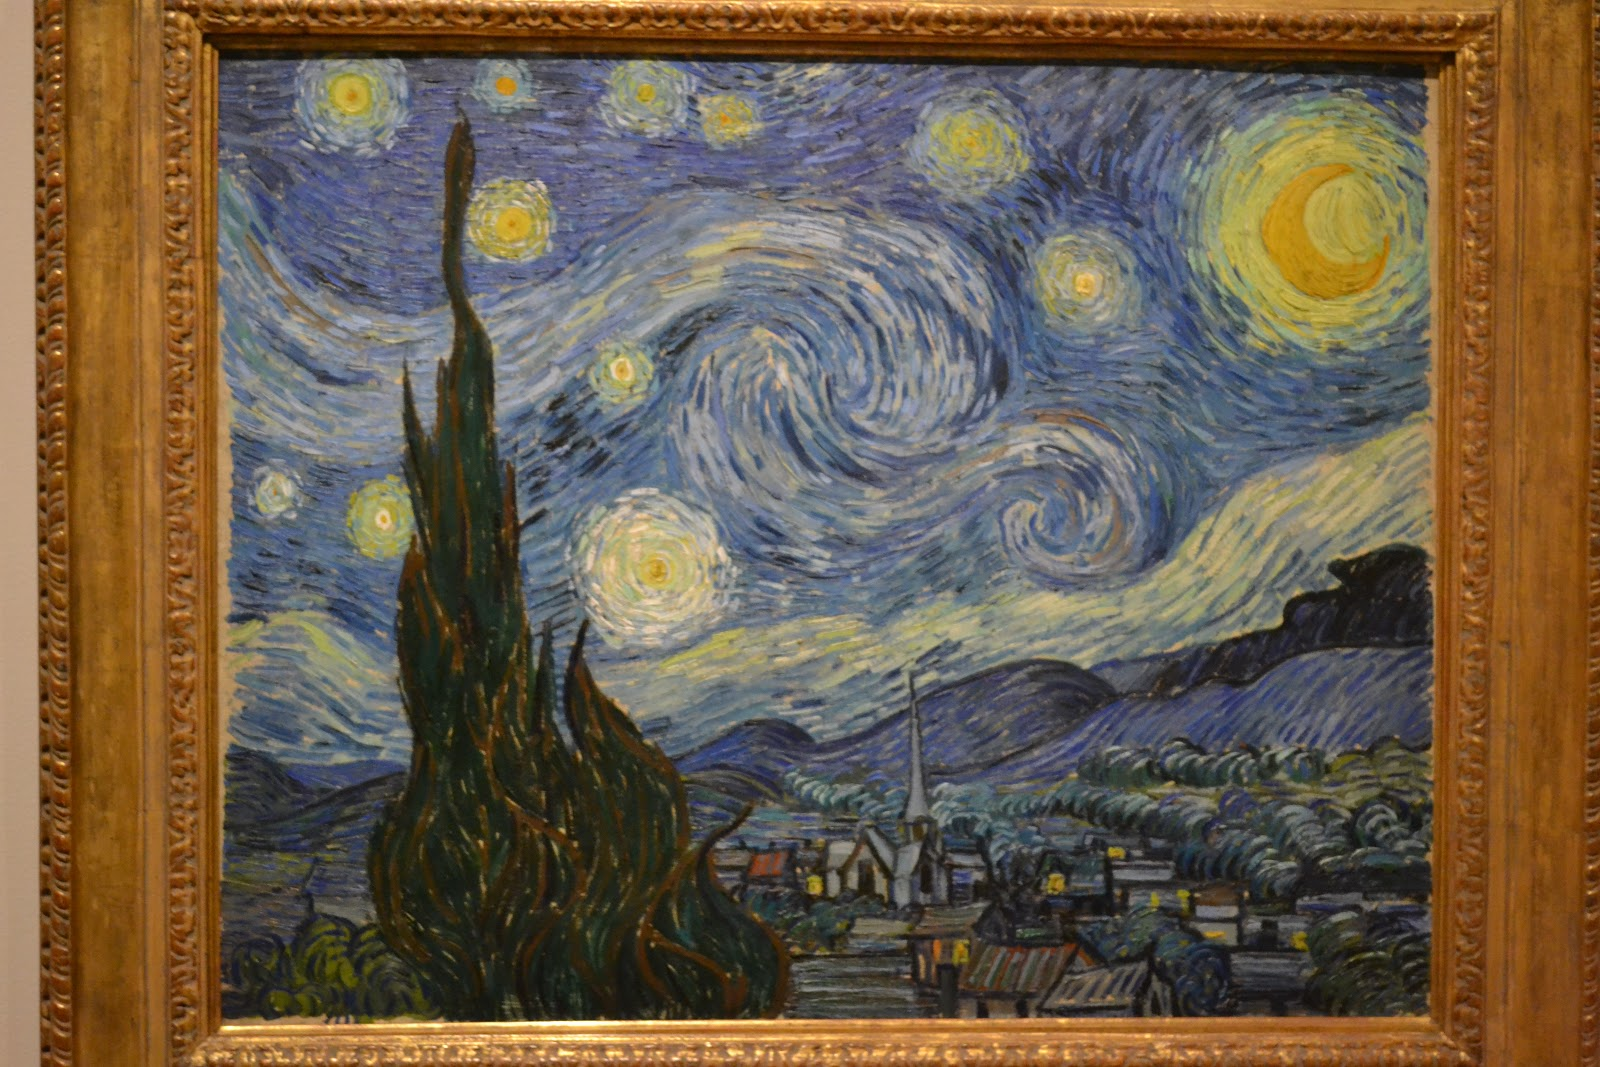 van gogh dark paintings - photo #44